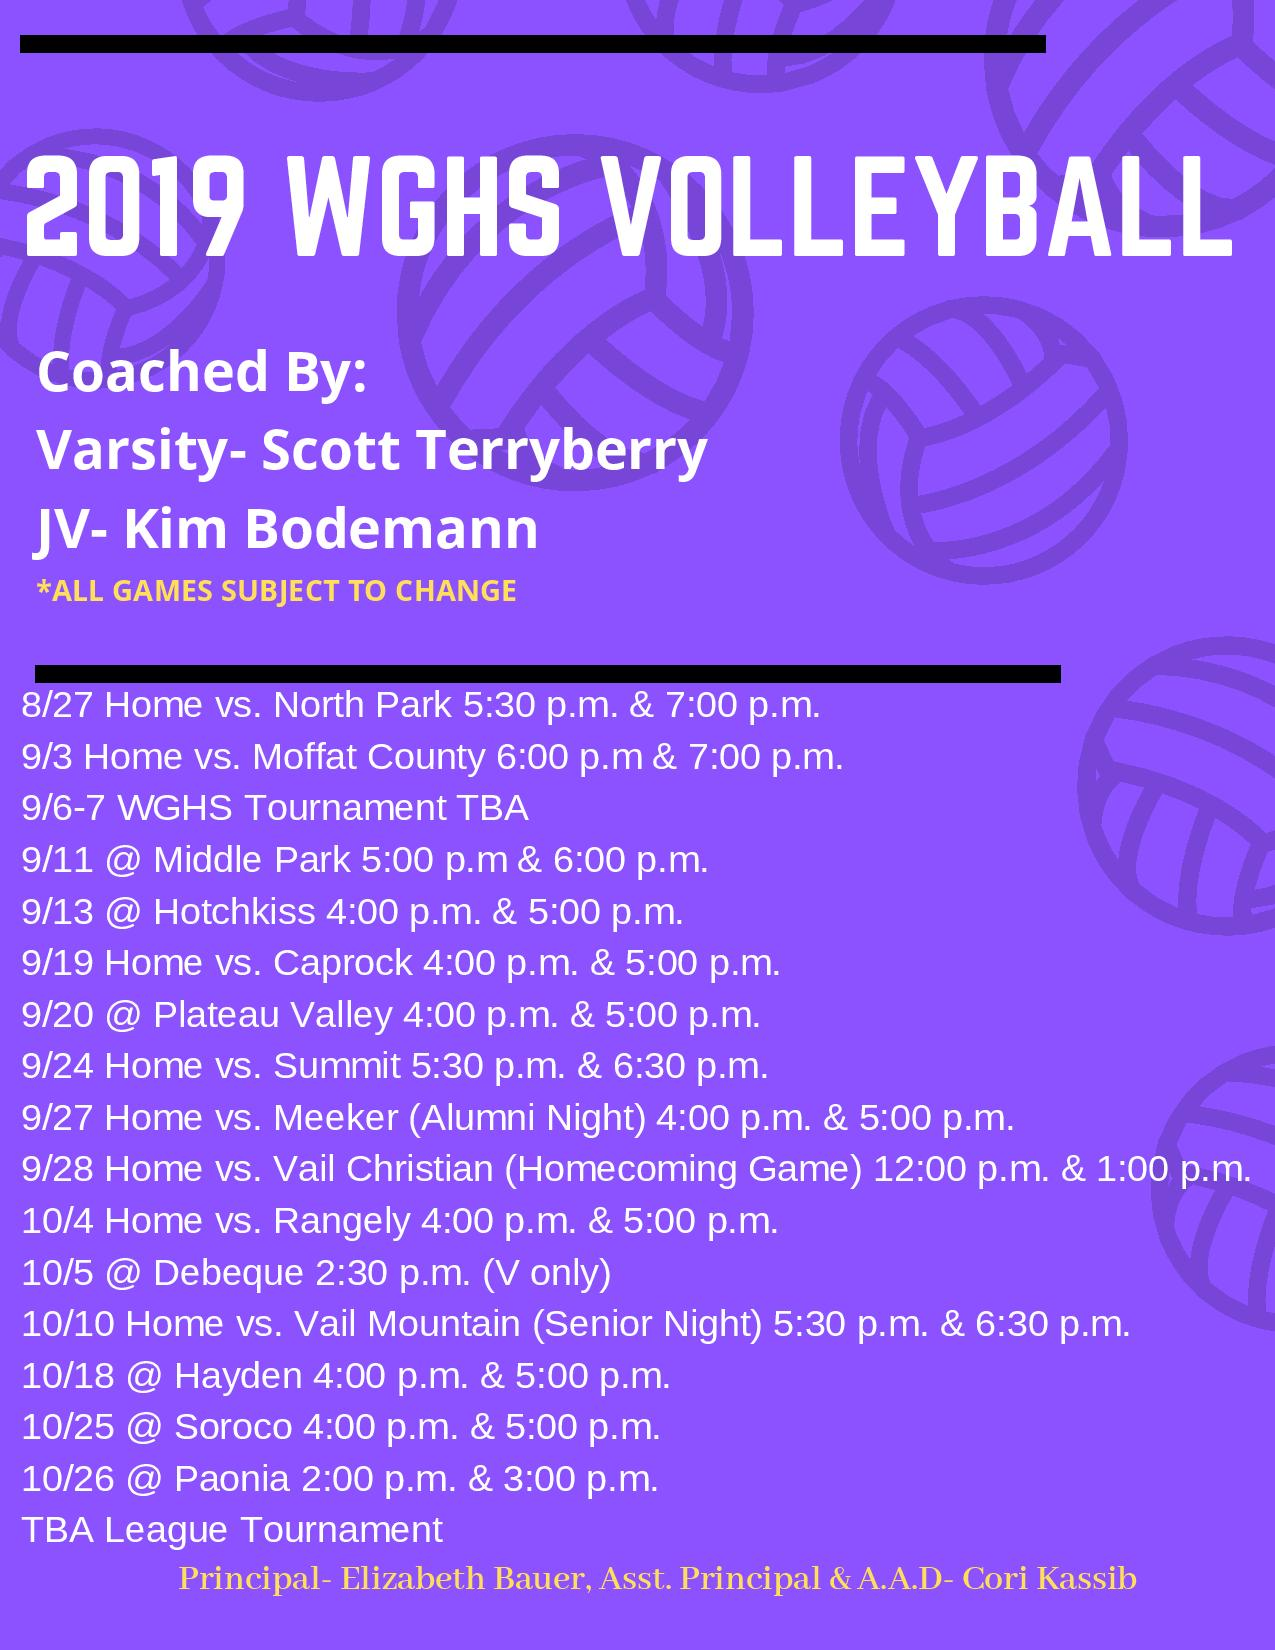 2019 Volleyball Schedule